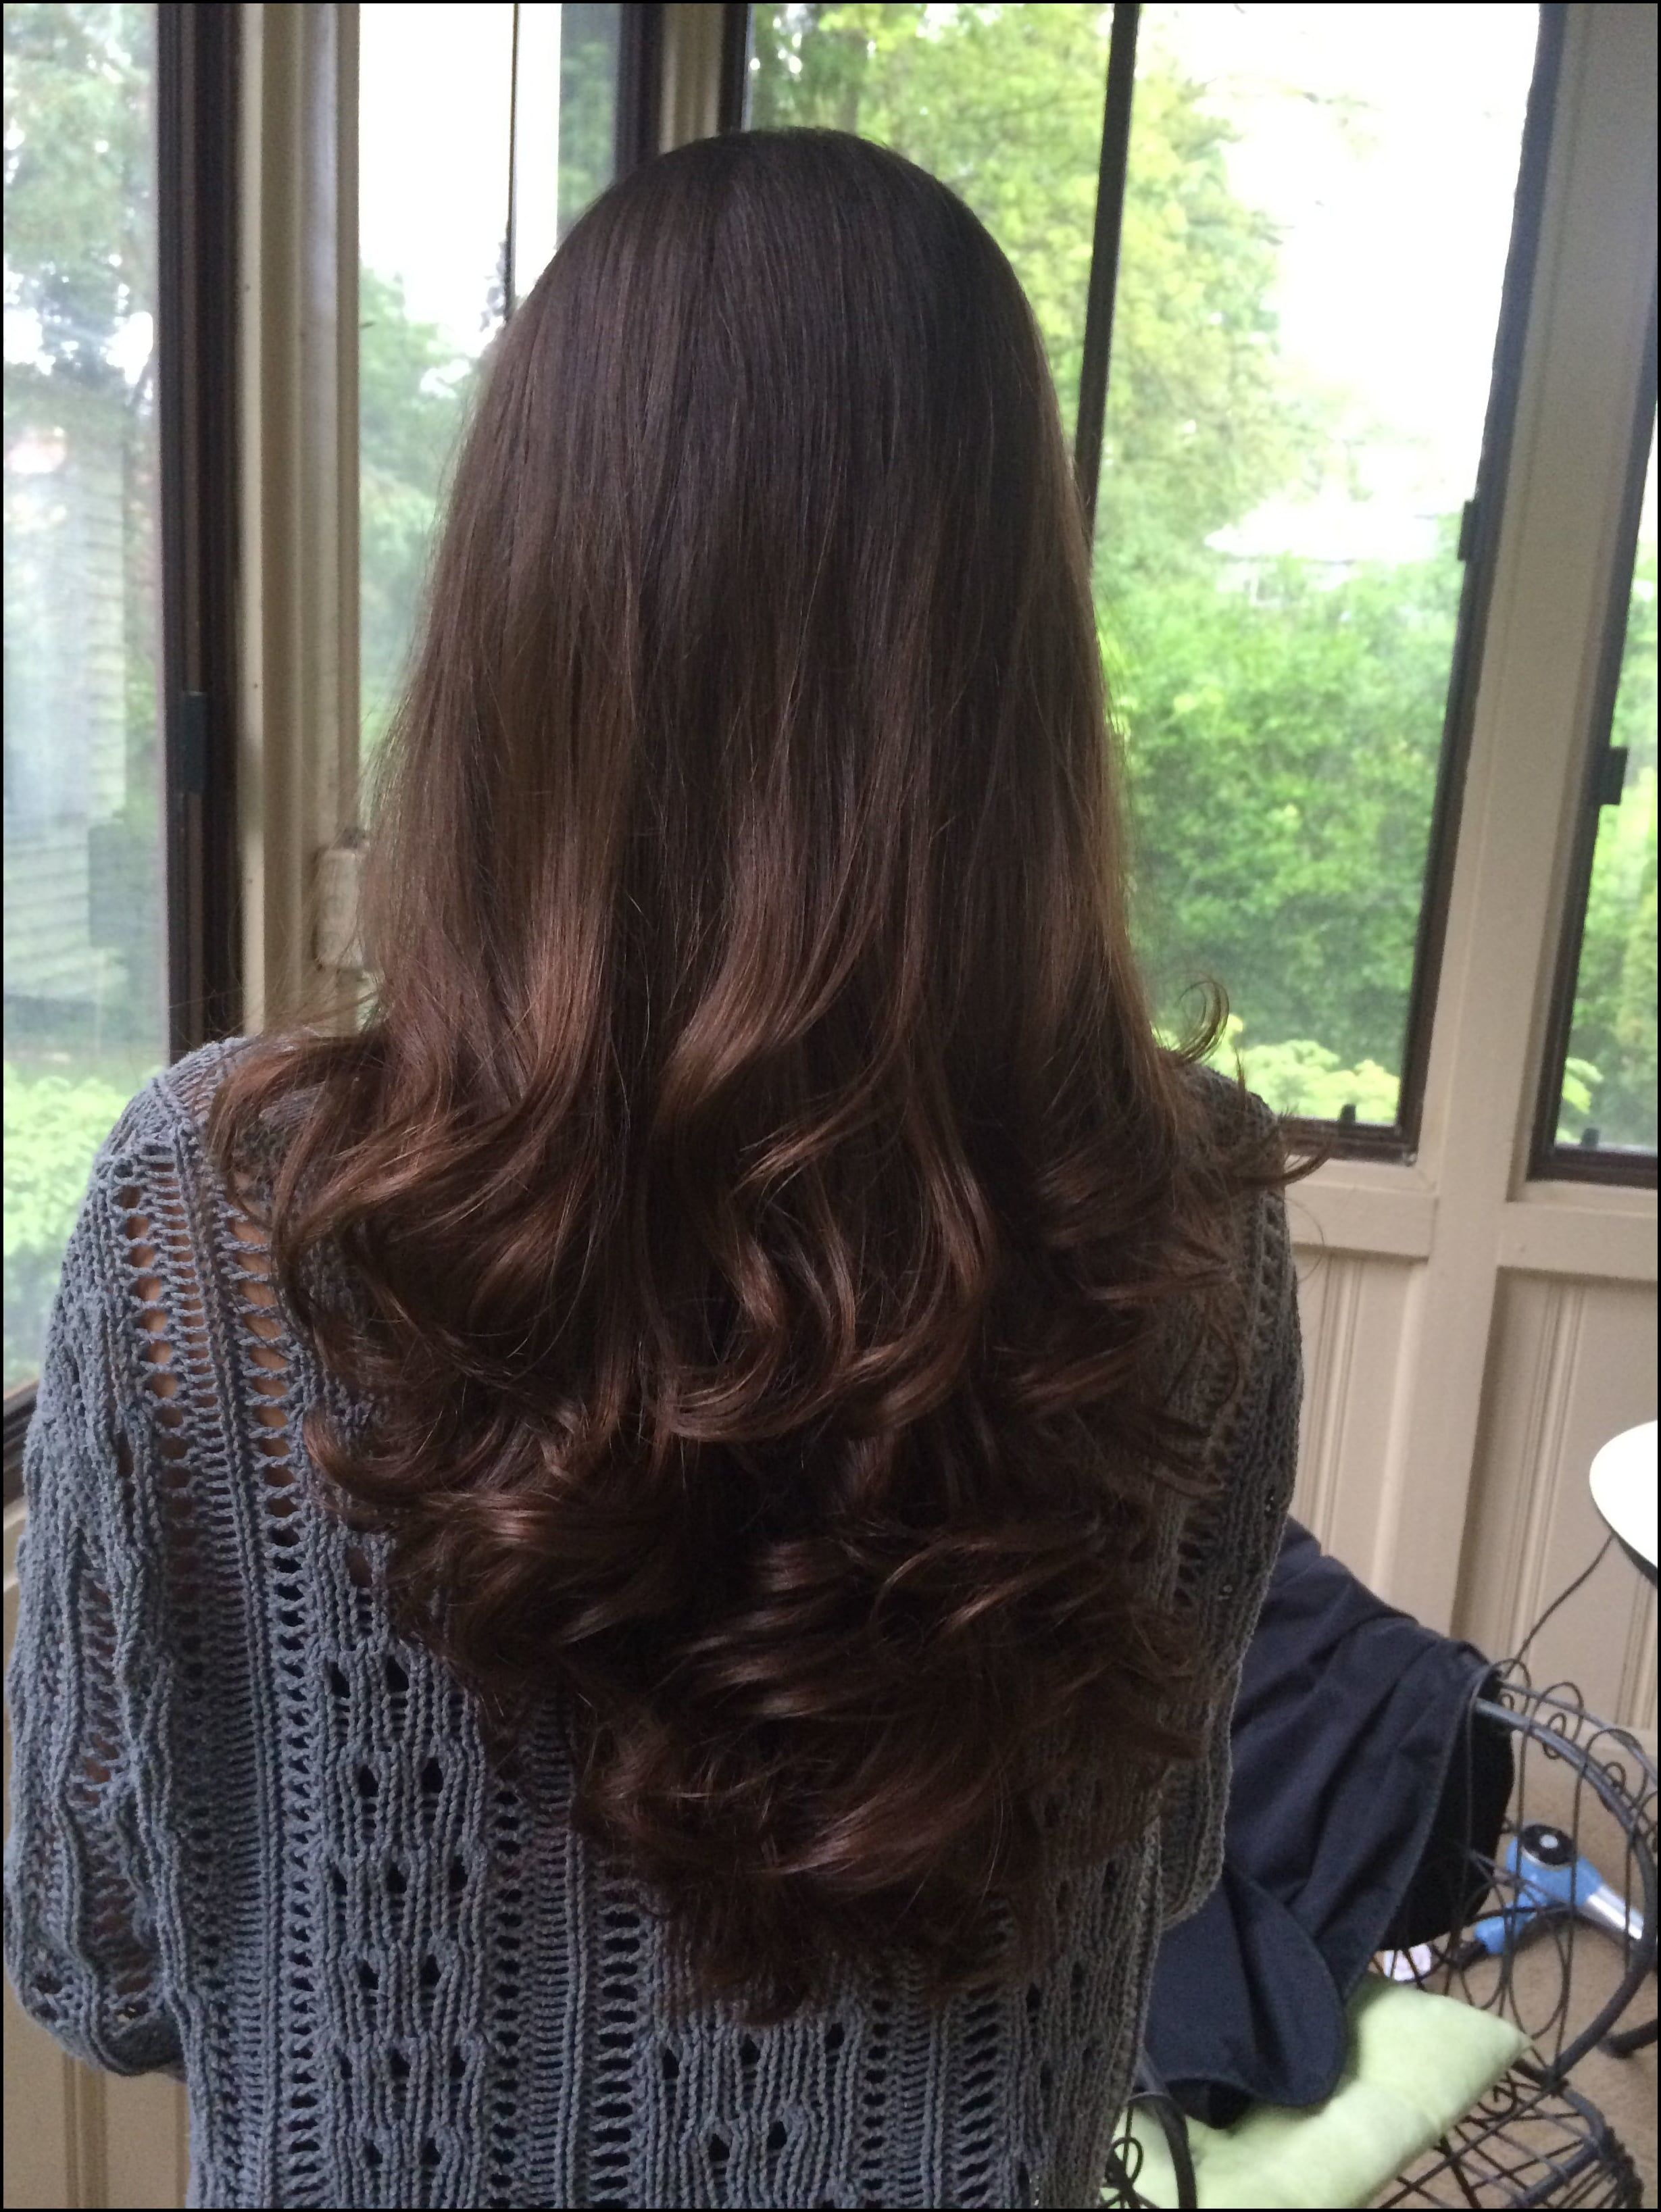 Long Layered Victoria Secret V Shape Haircut With Curls Wish My Haircuts For Long Hair Haircuts For Long Hair With Layers Haircuts For Medium Hair